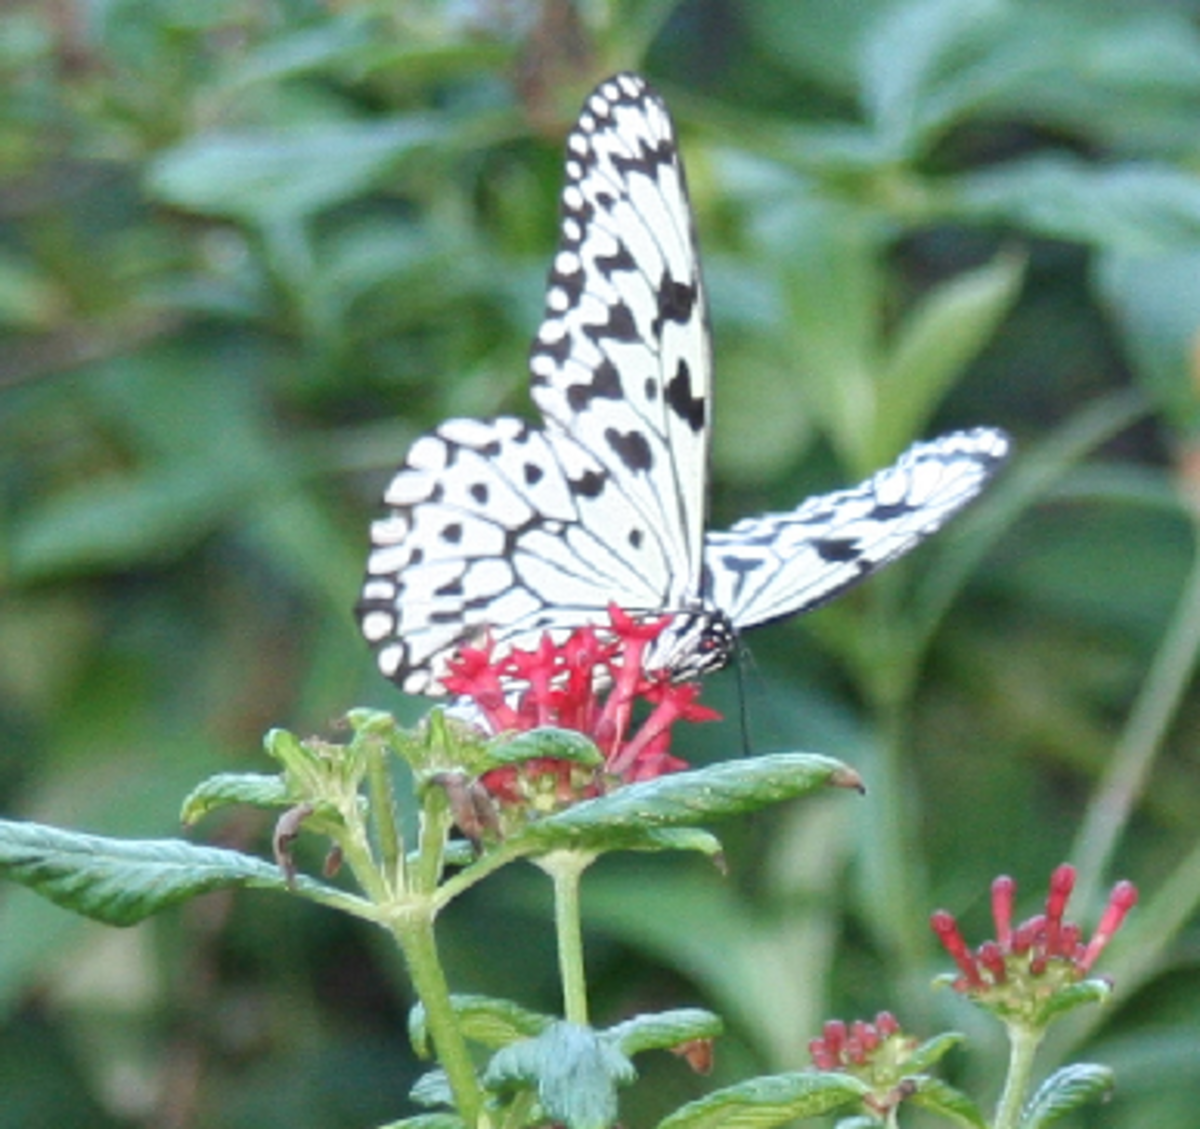 Black and White Polka Dot Butterfly